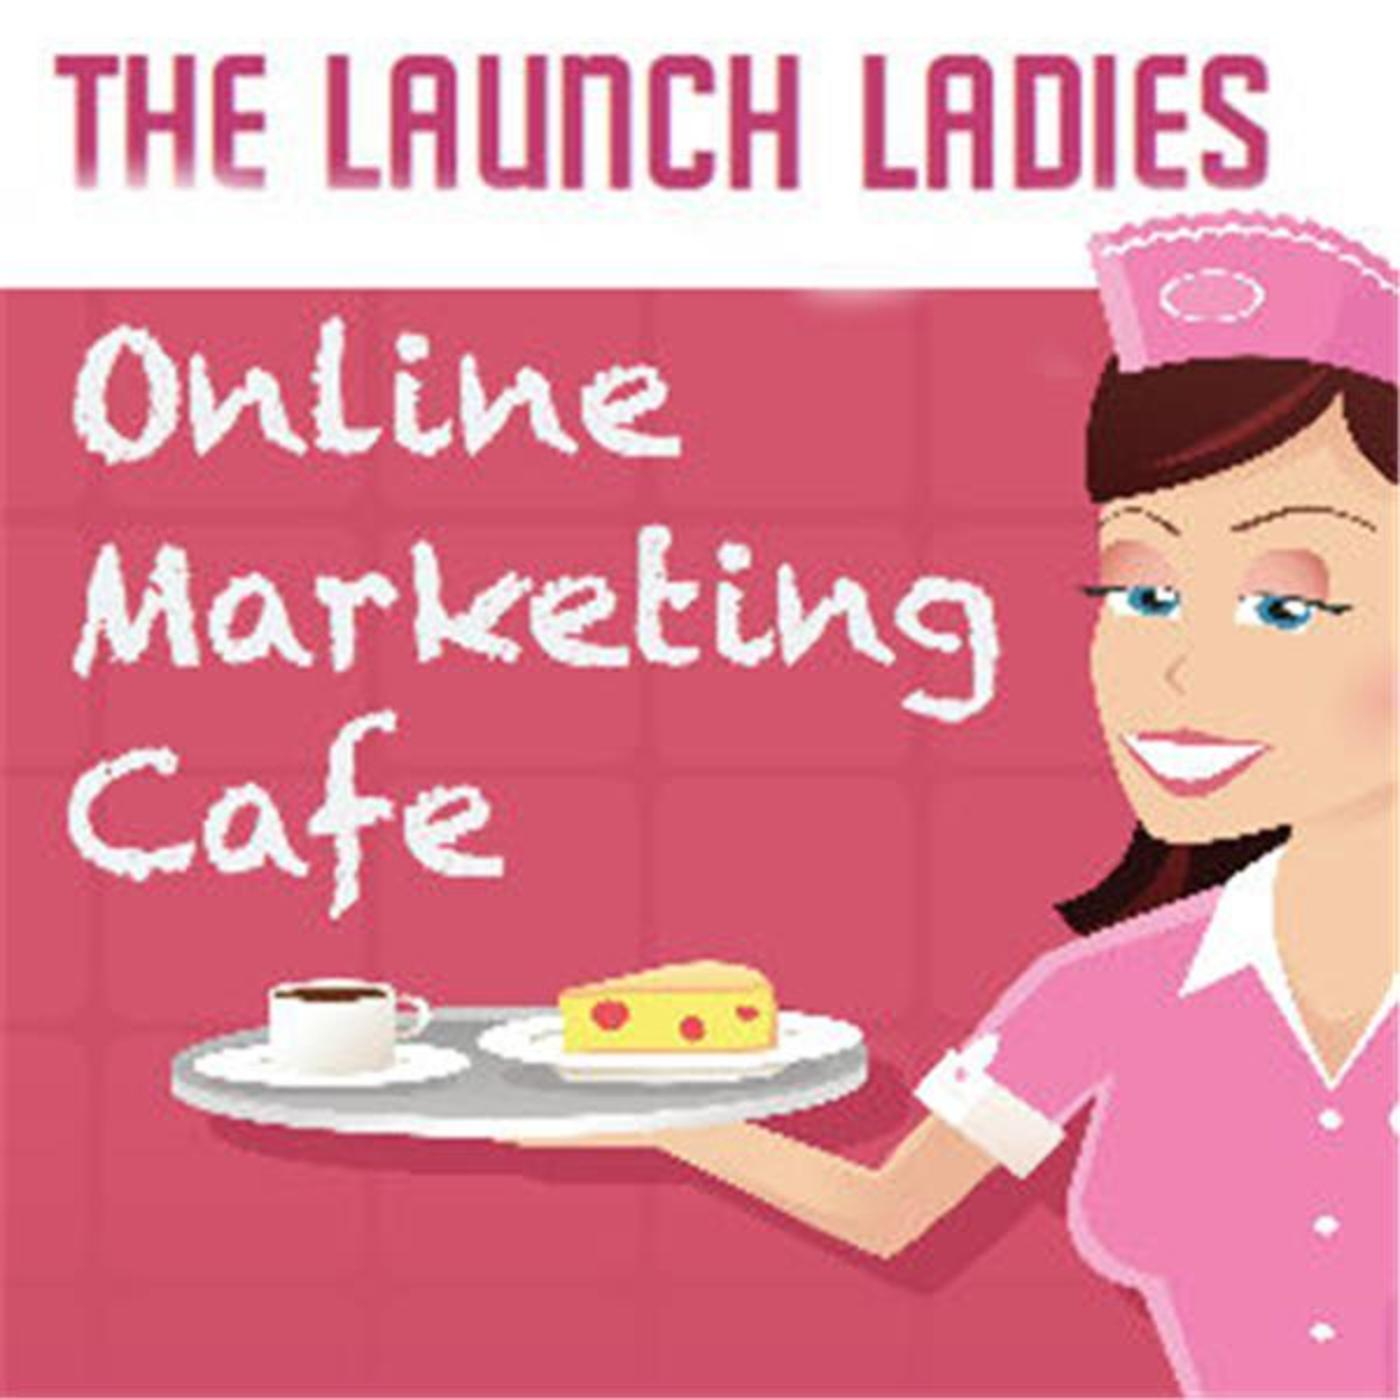 The Launch Ladies Cafe